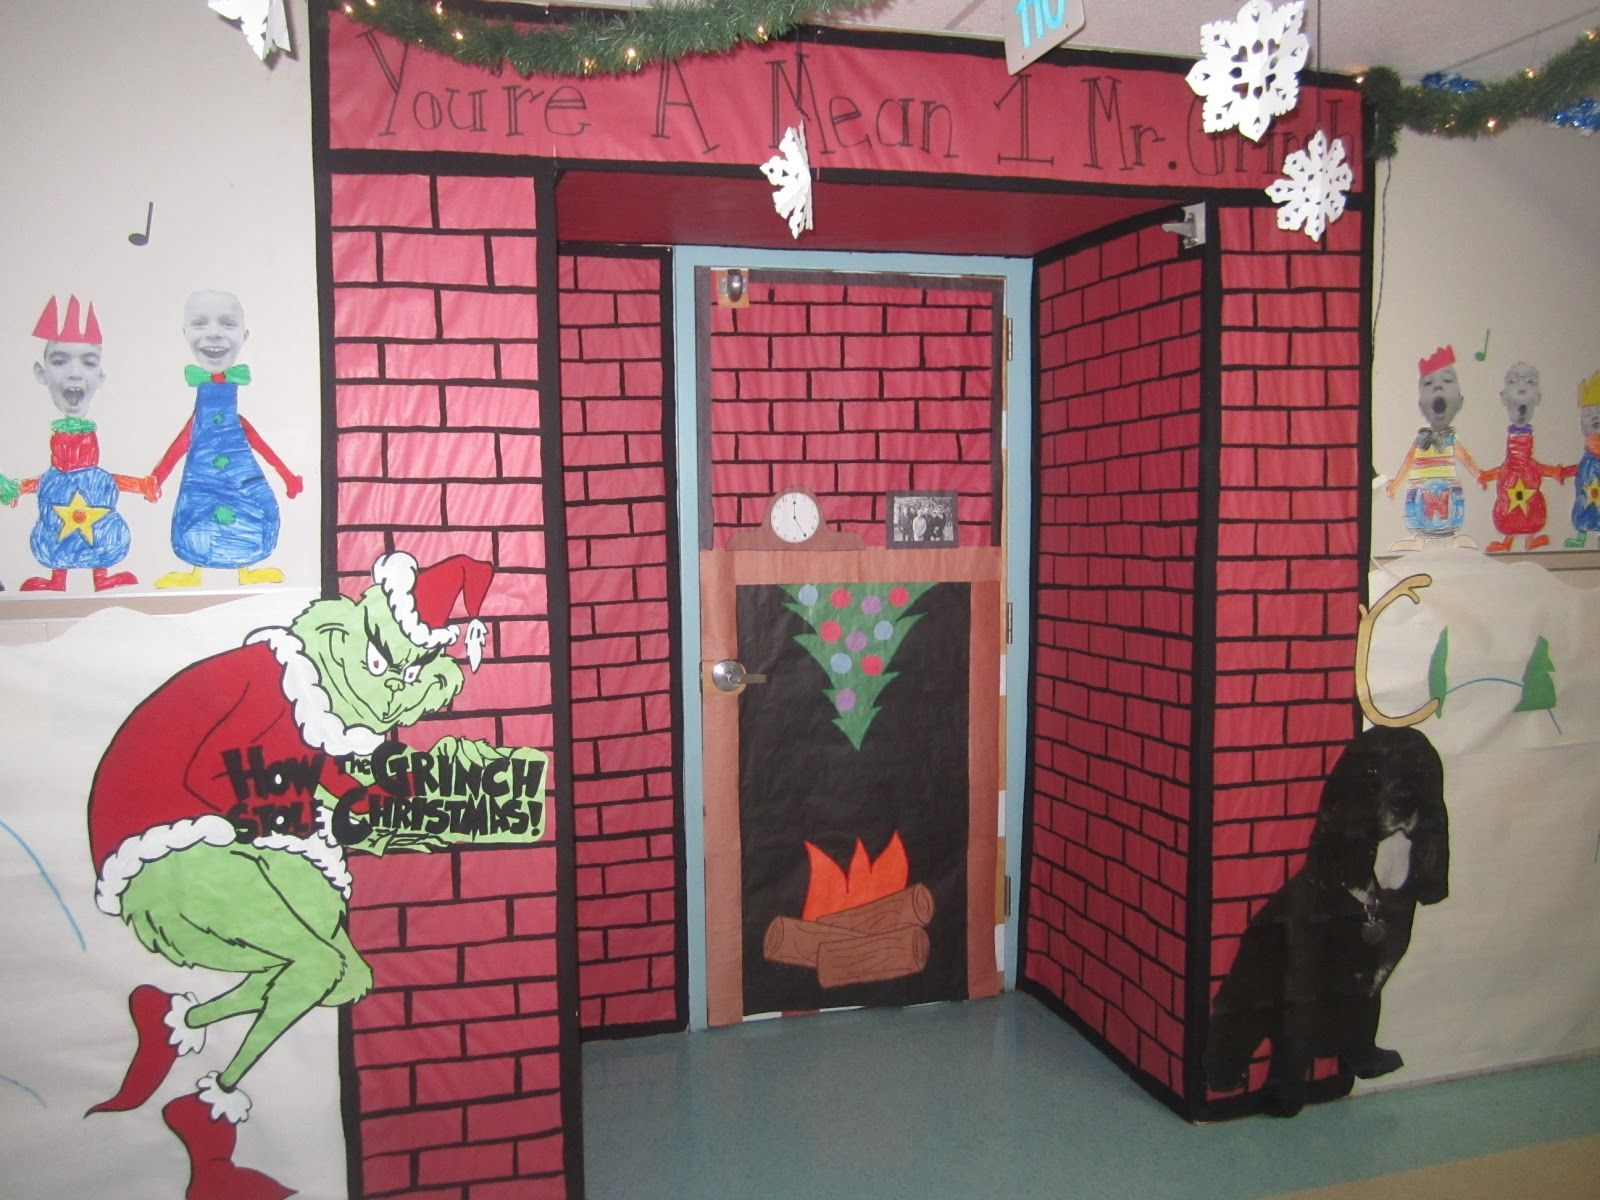 Christmas door decorations ideas for the office - Grinch Office Decorations Google Search Christmas Classroom Doorclassroom